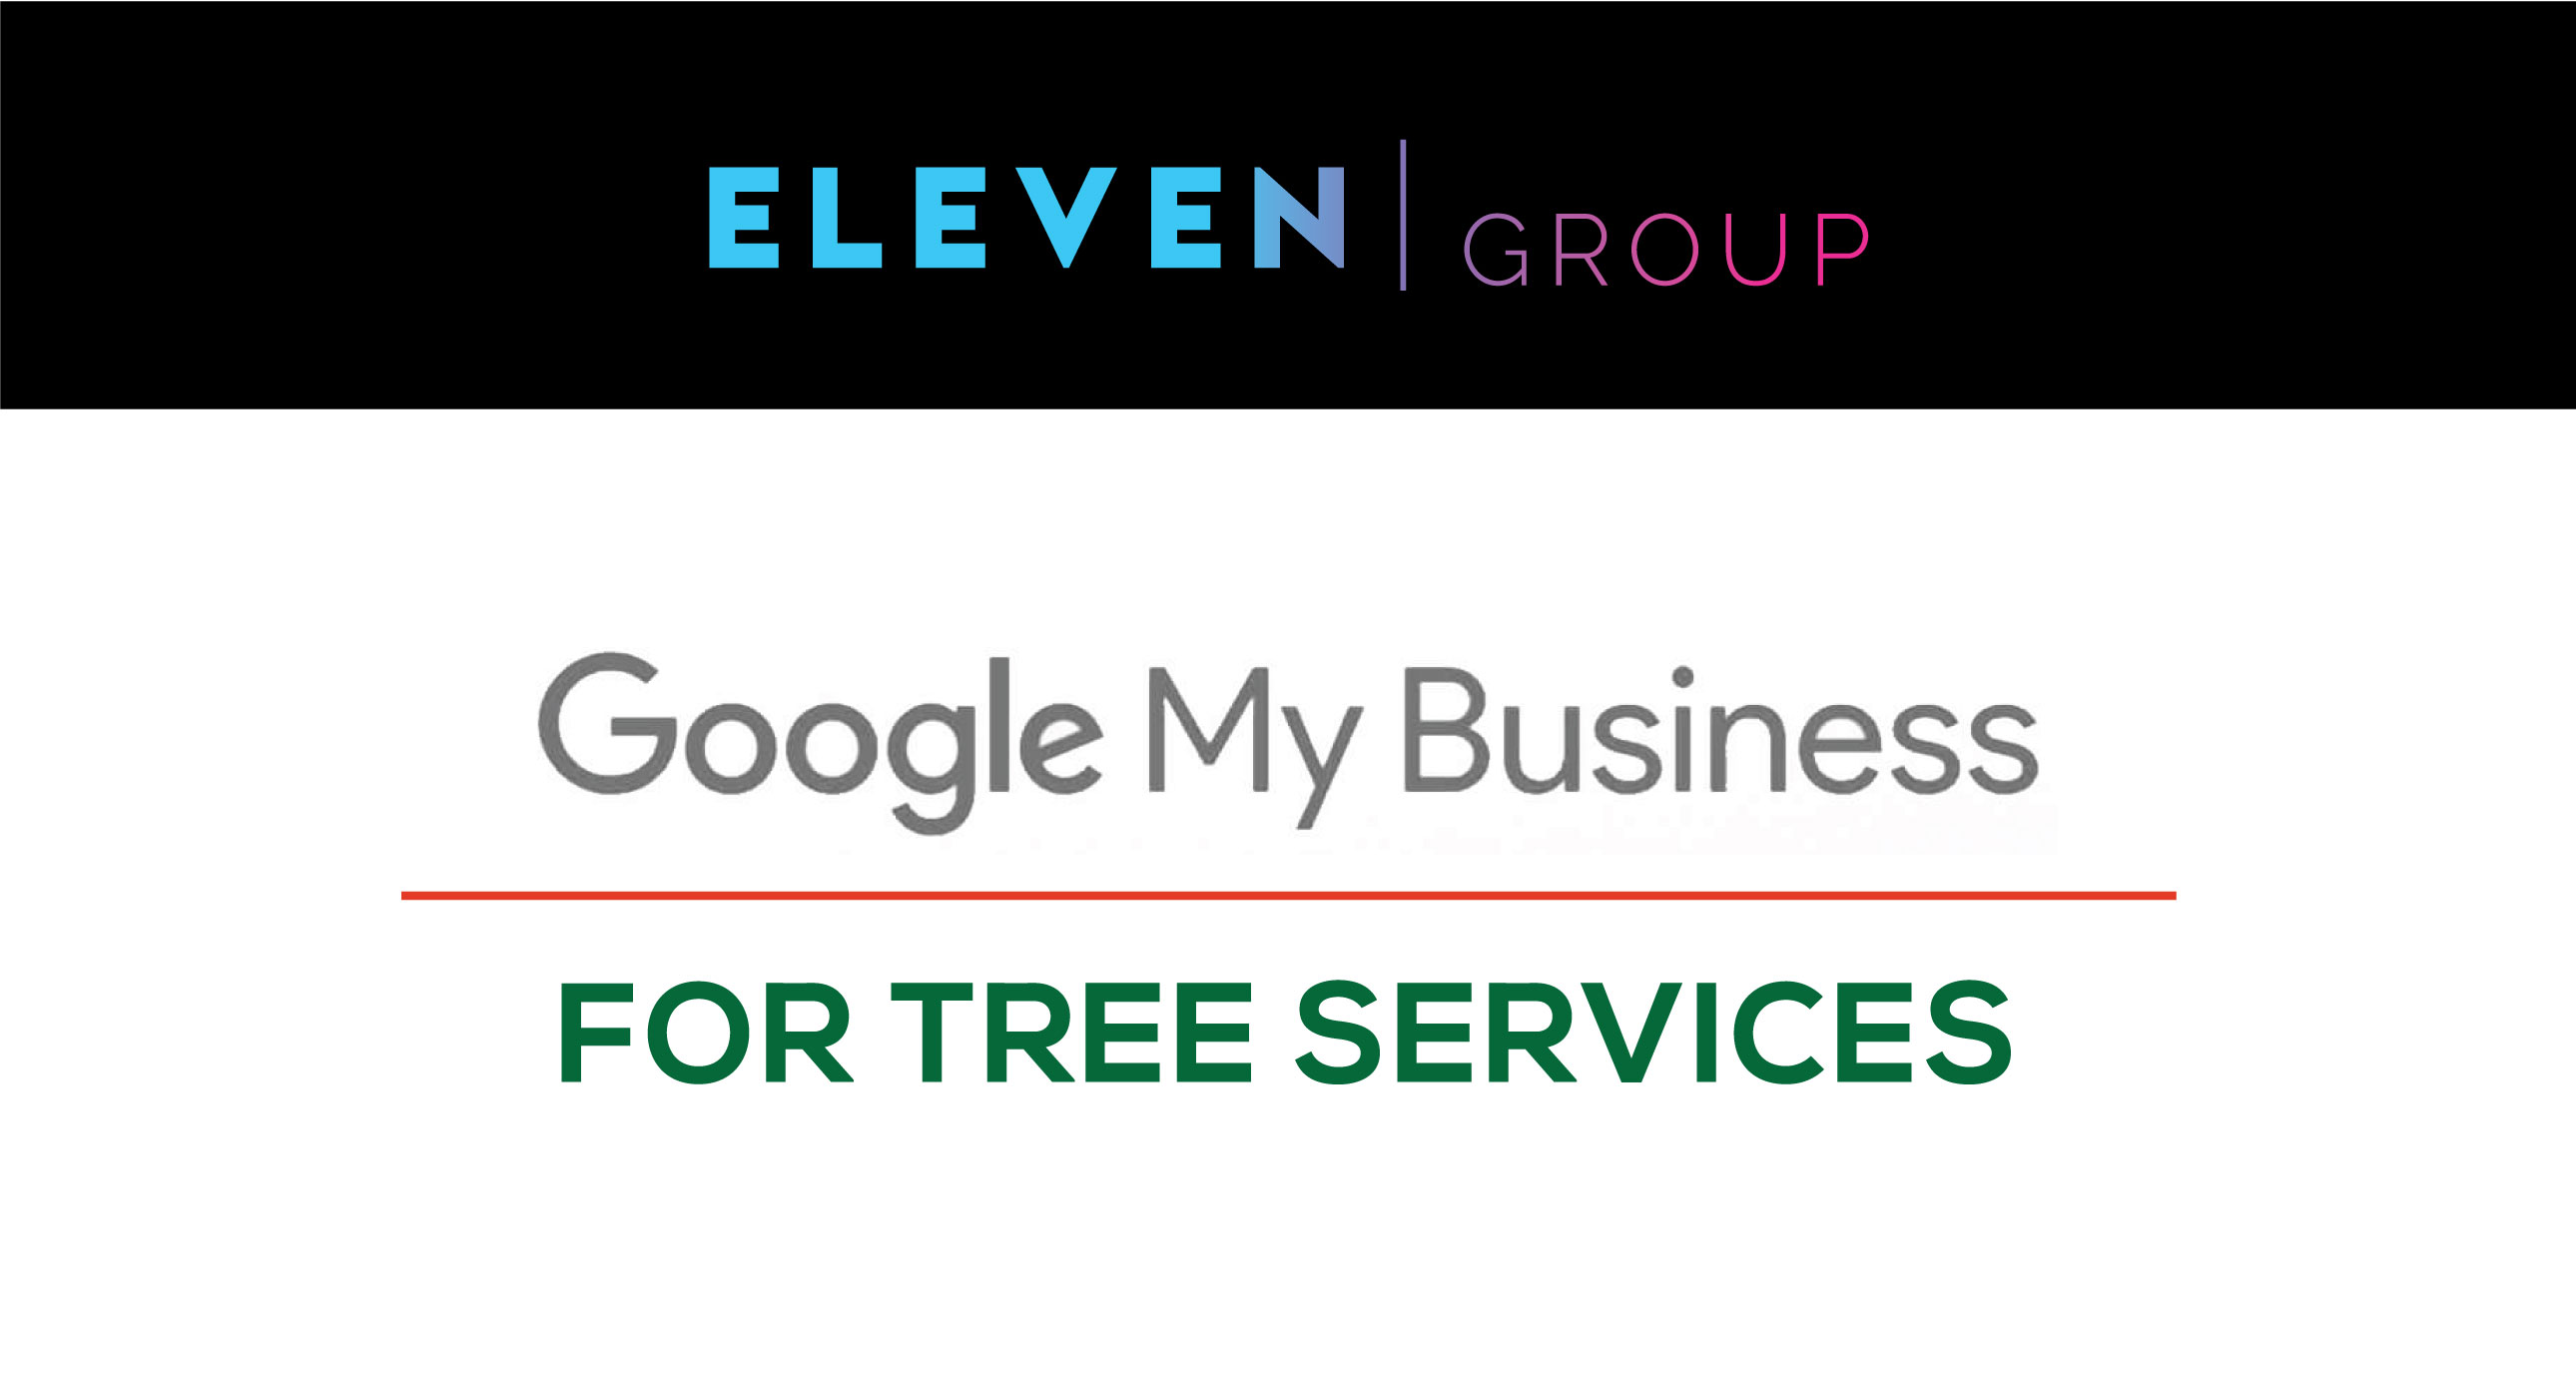 Tree Service Local SEO